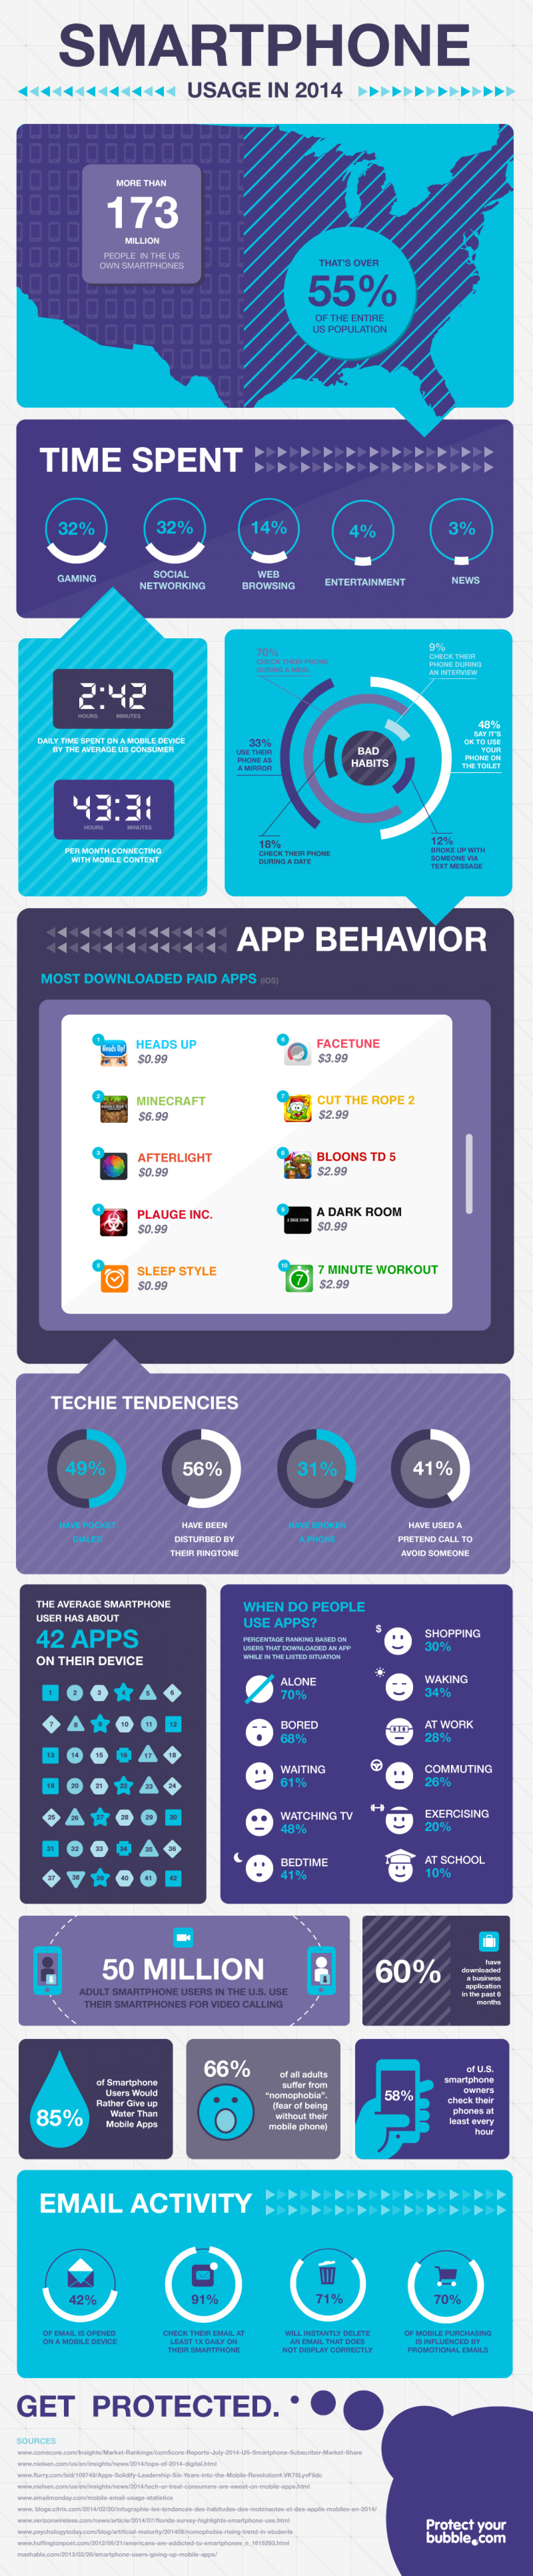 Smartphone Usage: Americans spend almost 3 hours a day on their phone Infographic